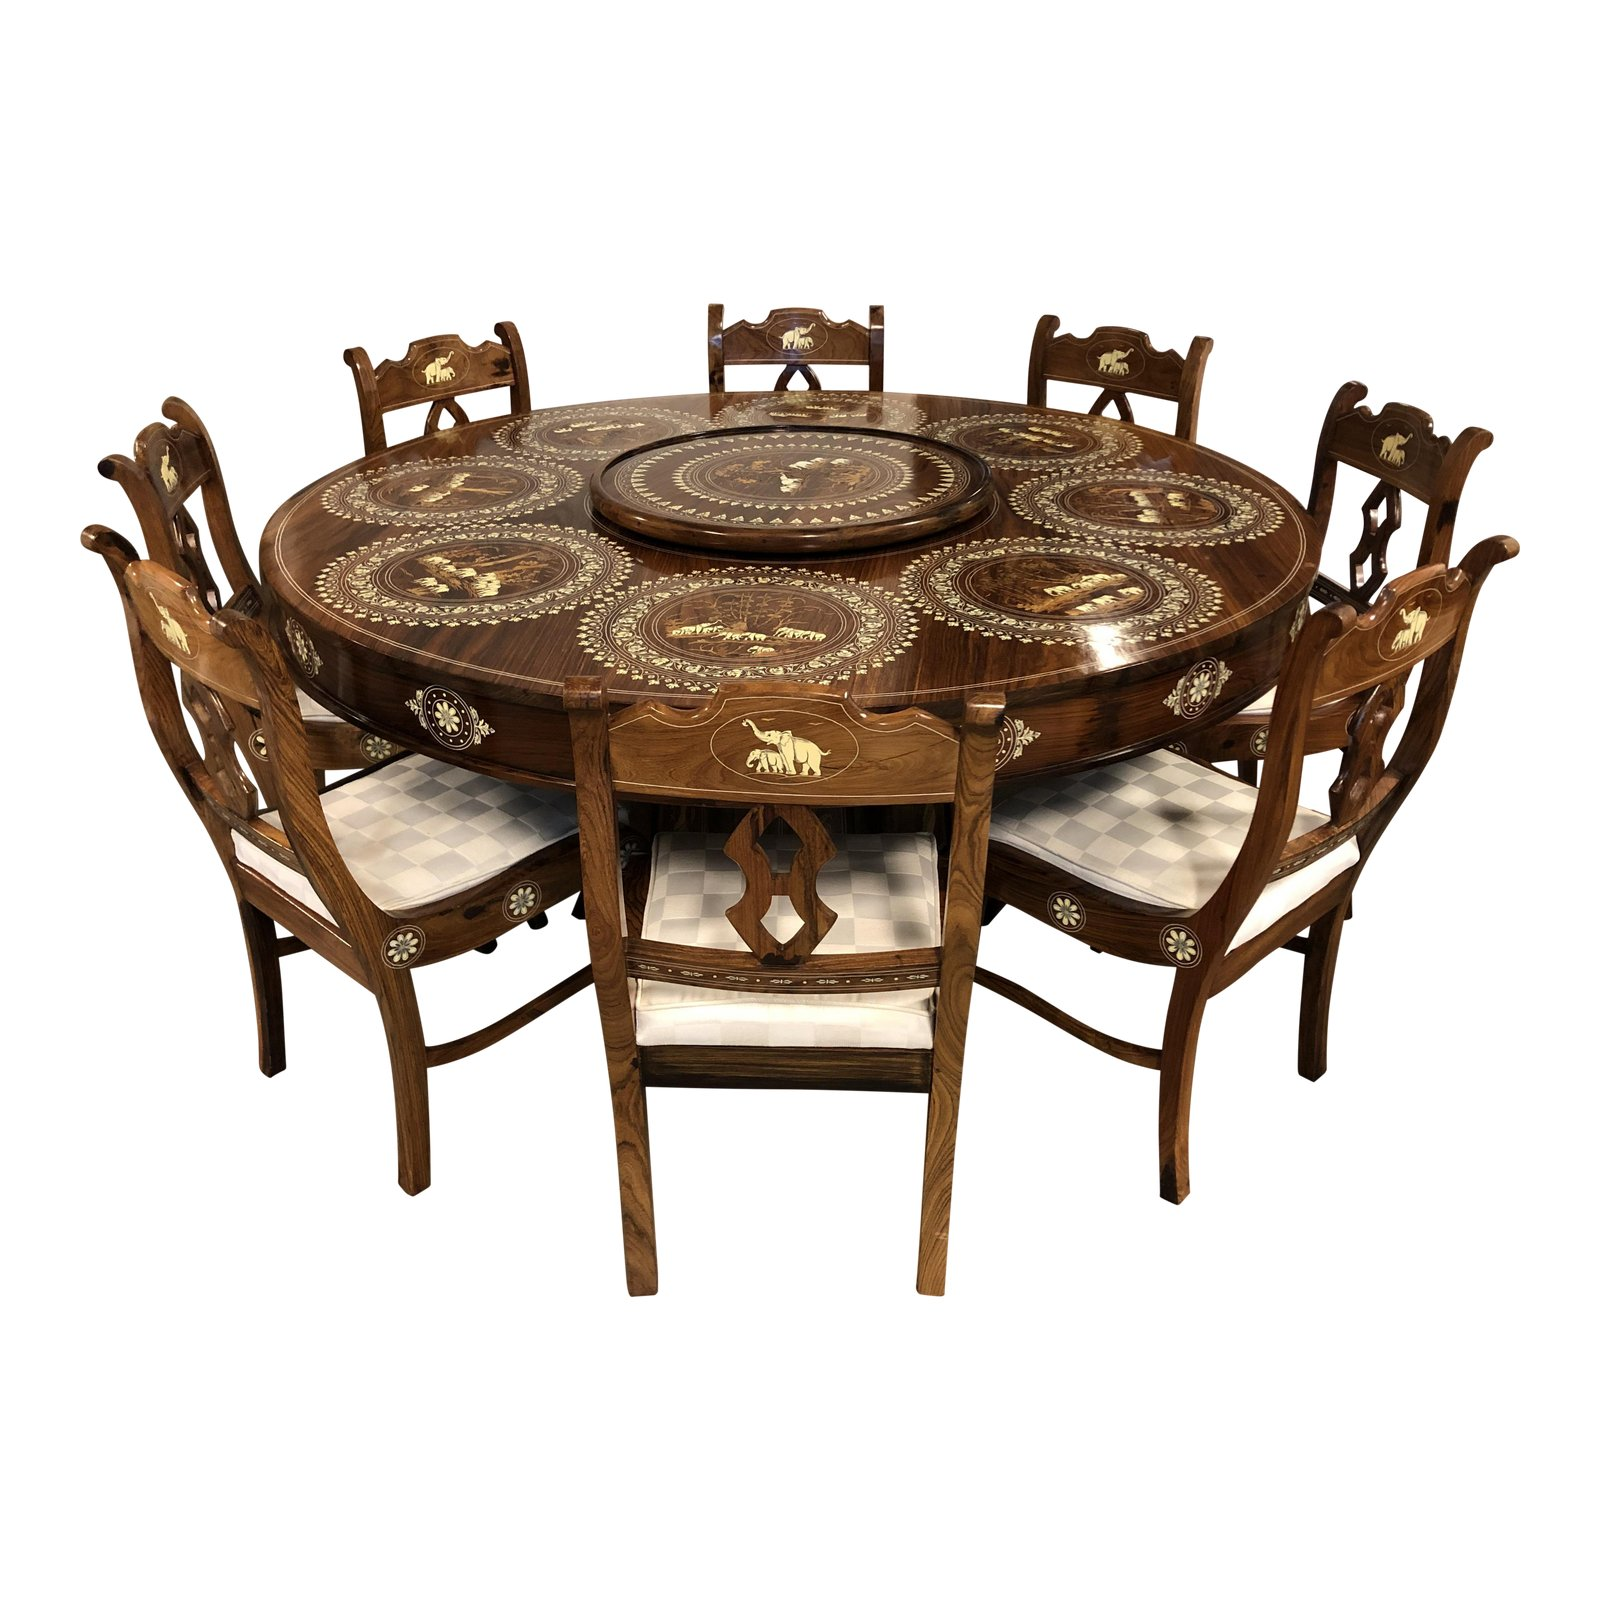 Wood Bone Inlaid Dining Table Eight Chairs From India